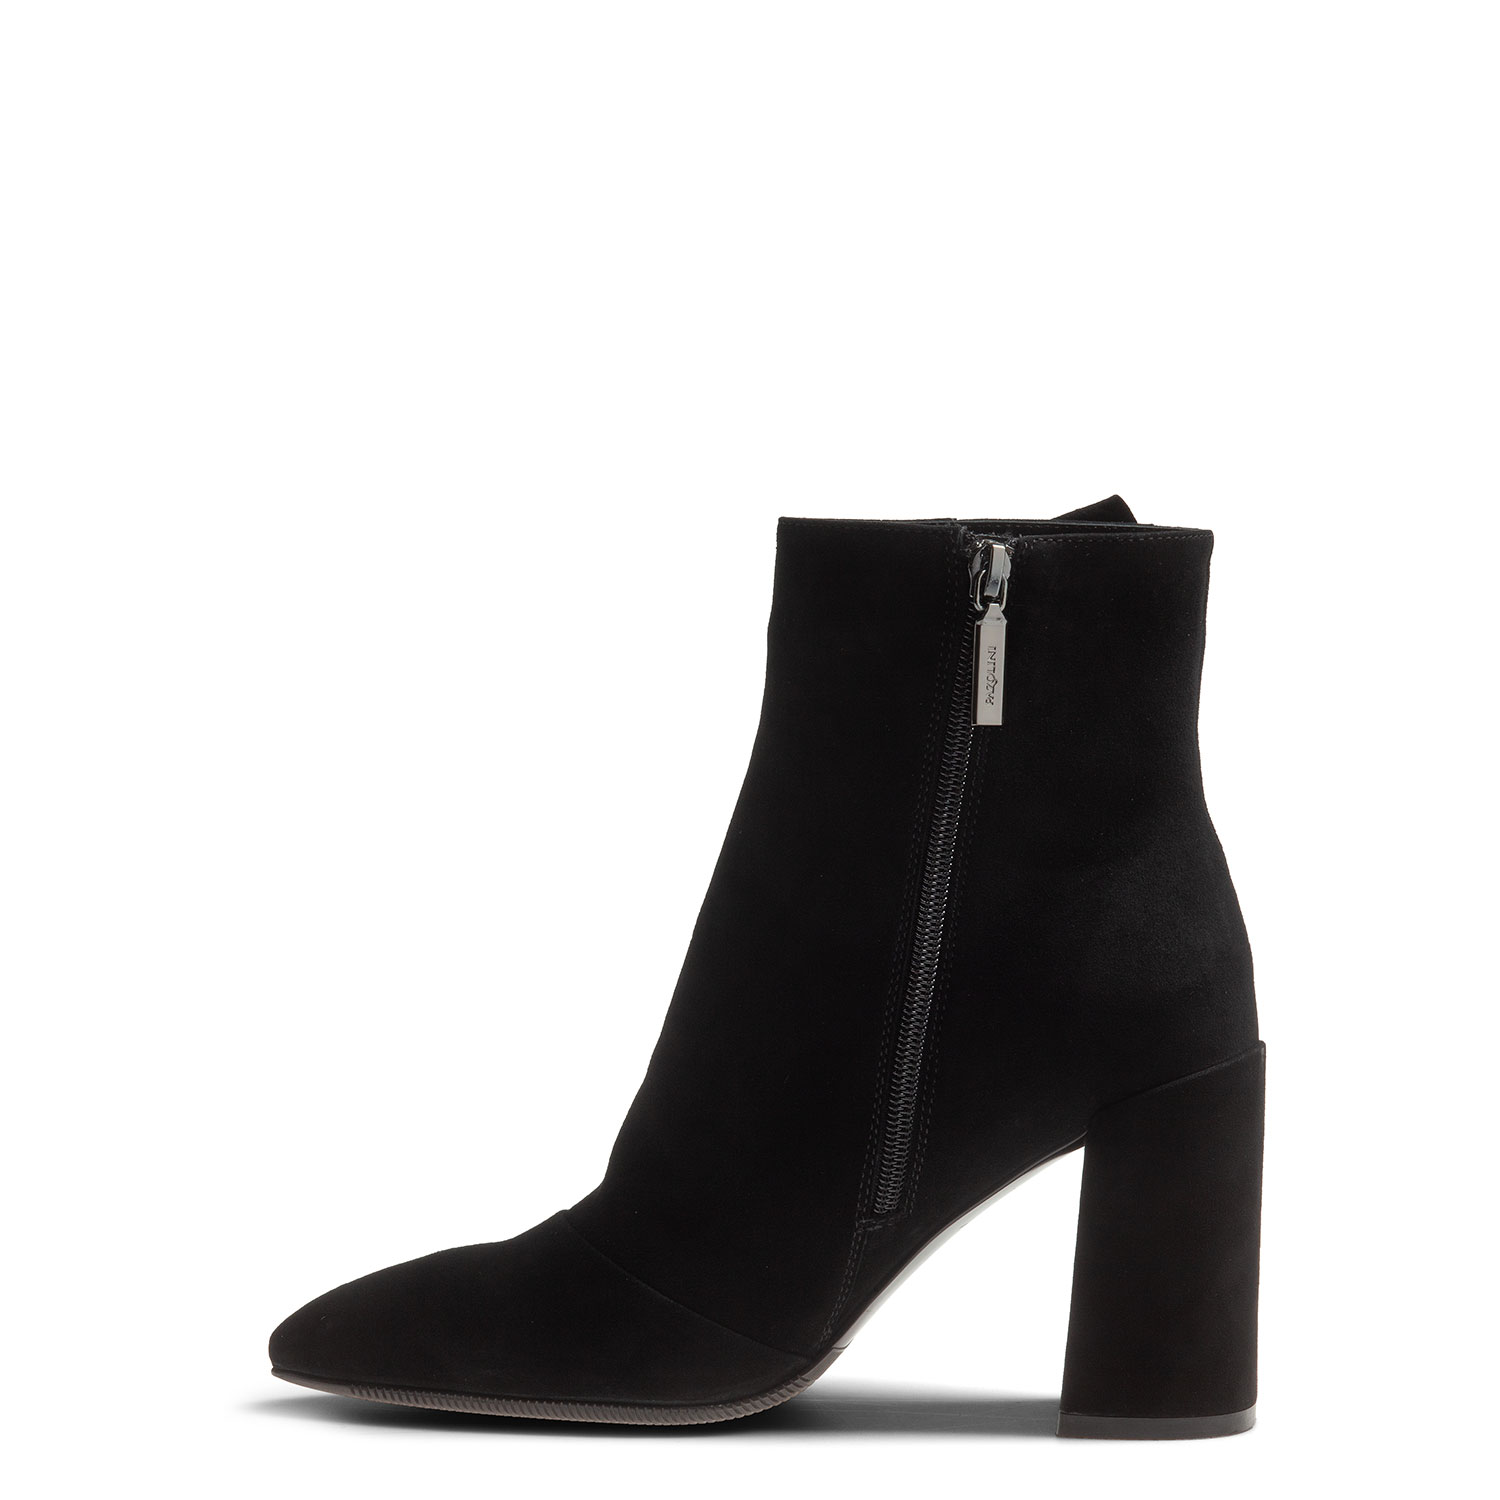 Women's ankle boots PAZOLINI FL-PGG11-1